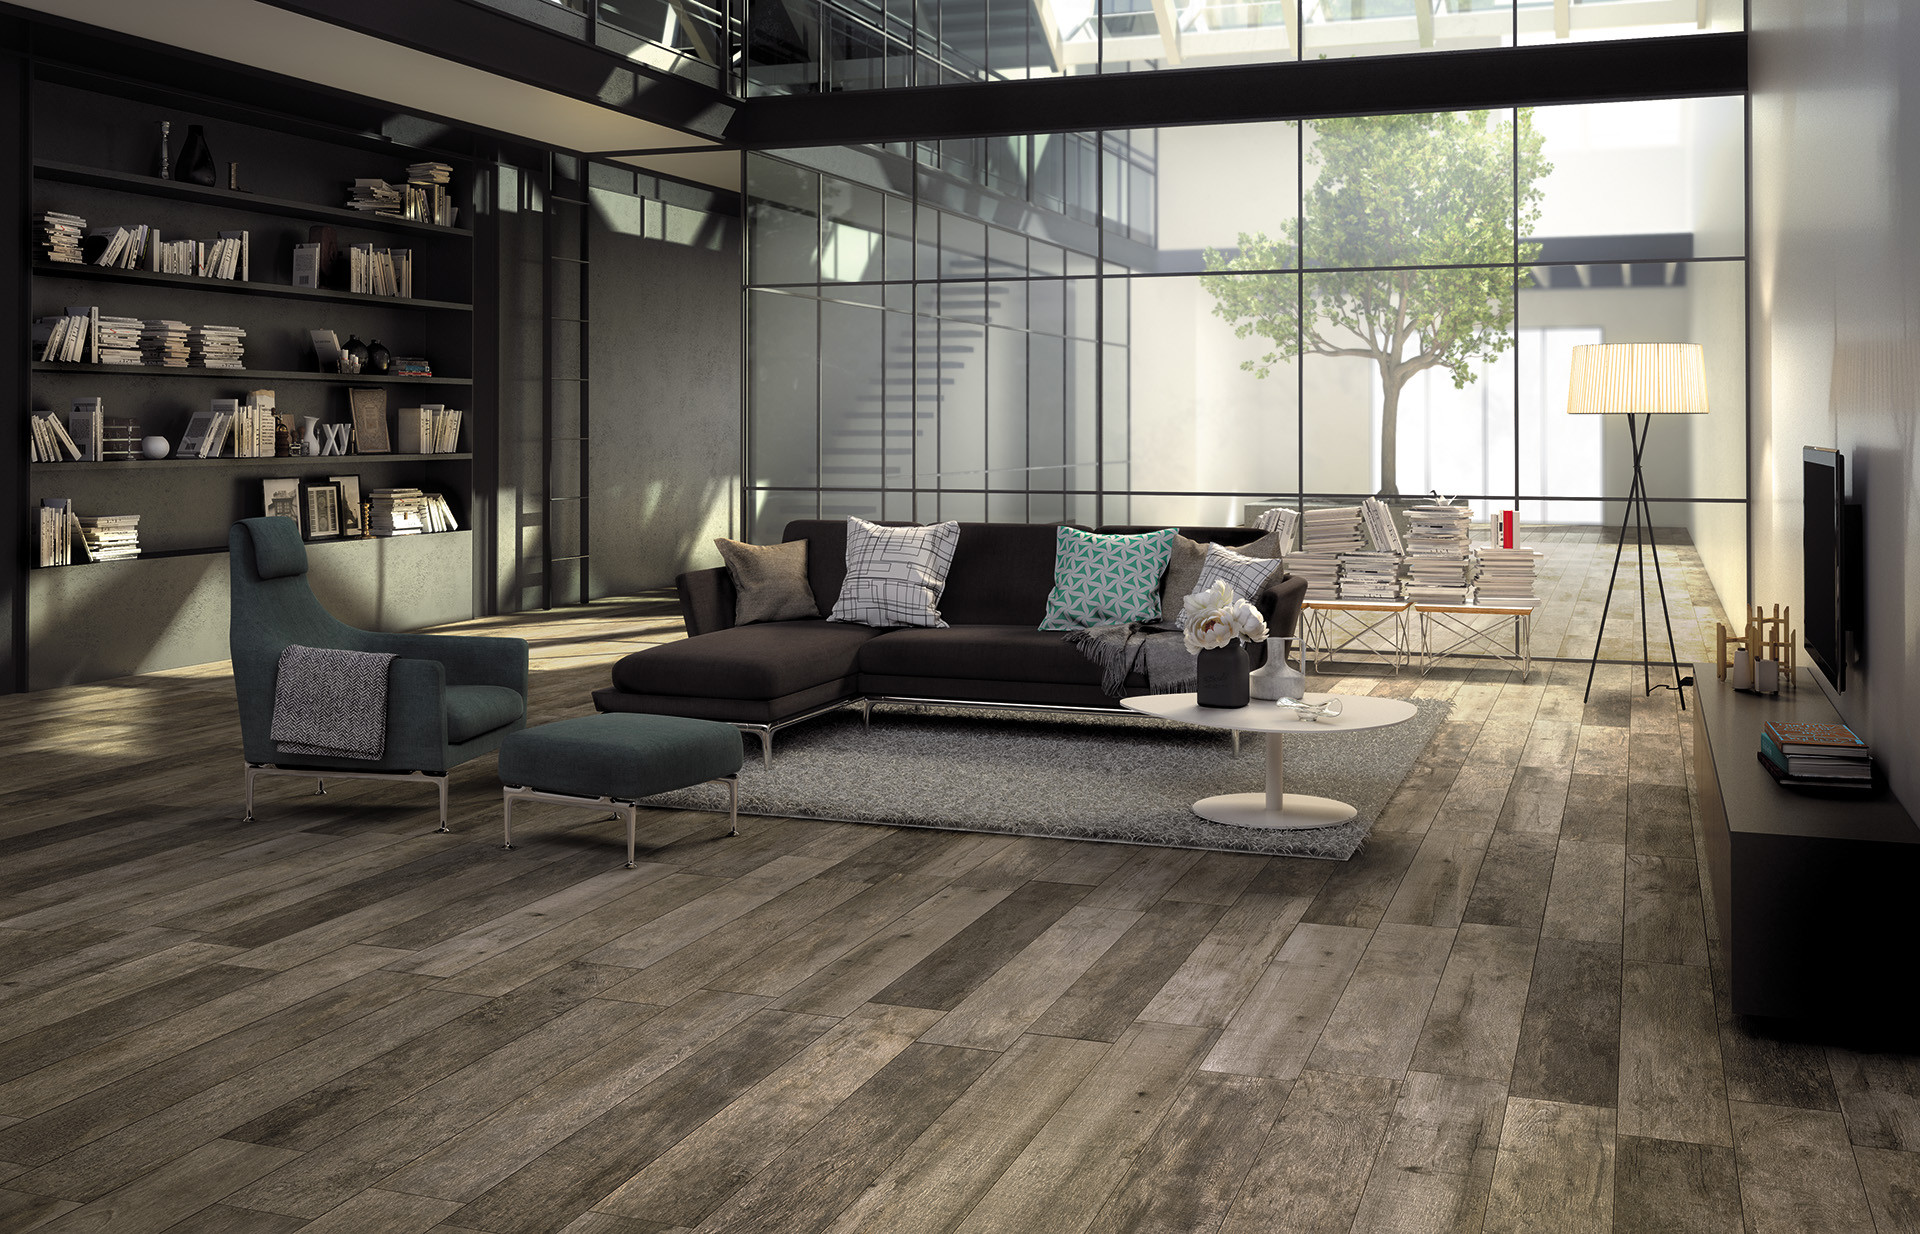 mirage hardwood flooring prices of noon noon ceramic wood effect tiles by mirage mirage intended for mirage noon living nn02